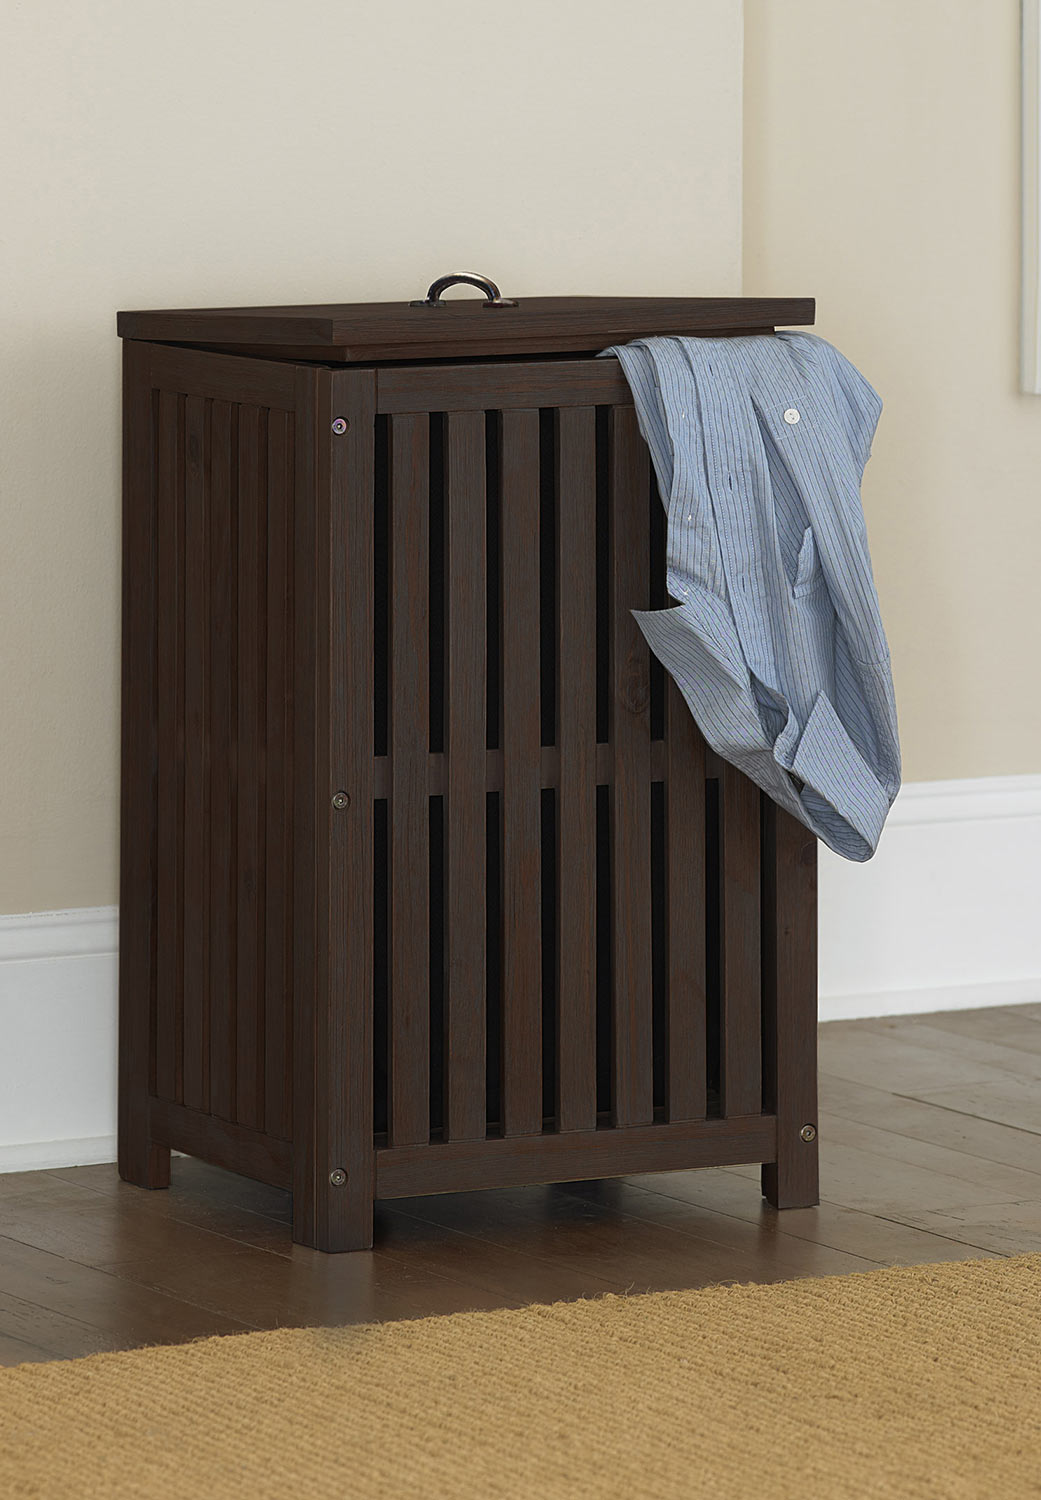 NE Kids Highlands Clothes Hamper - Espresso